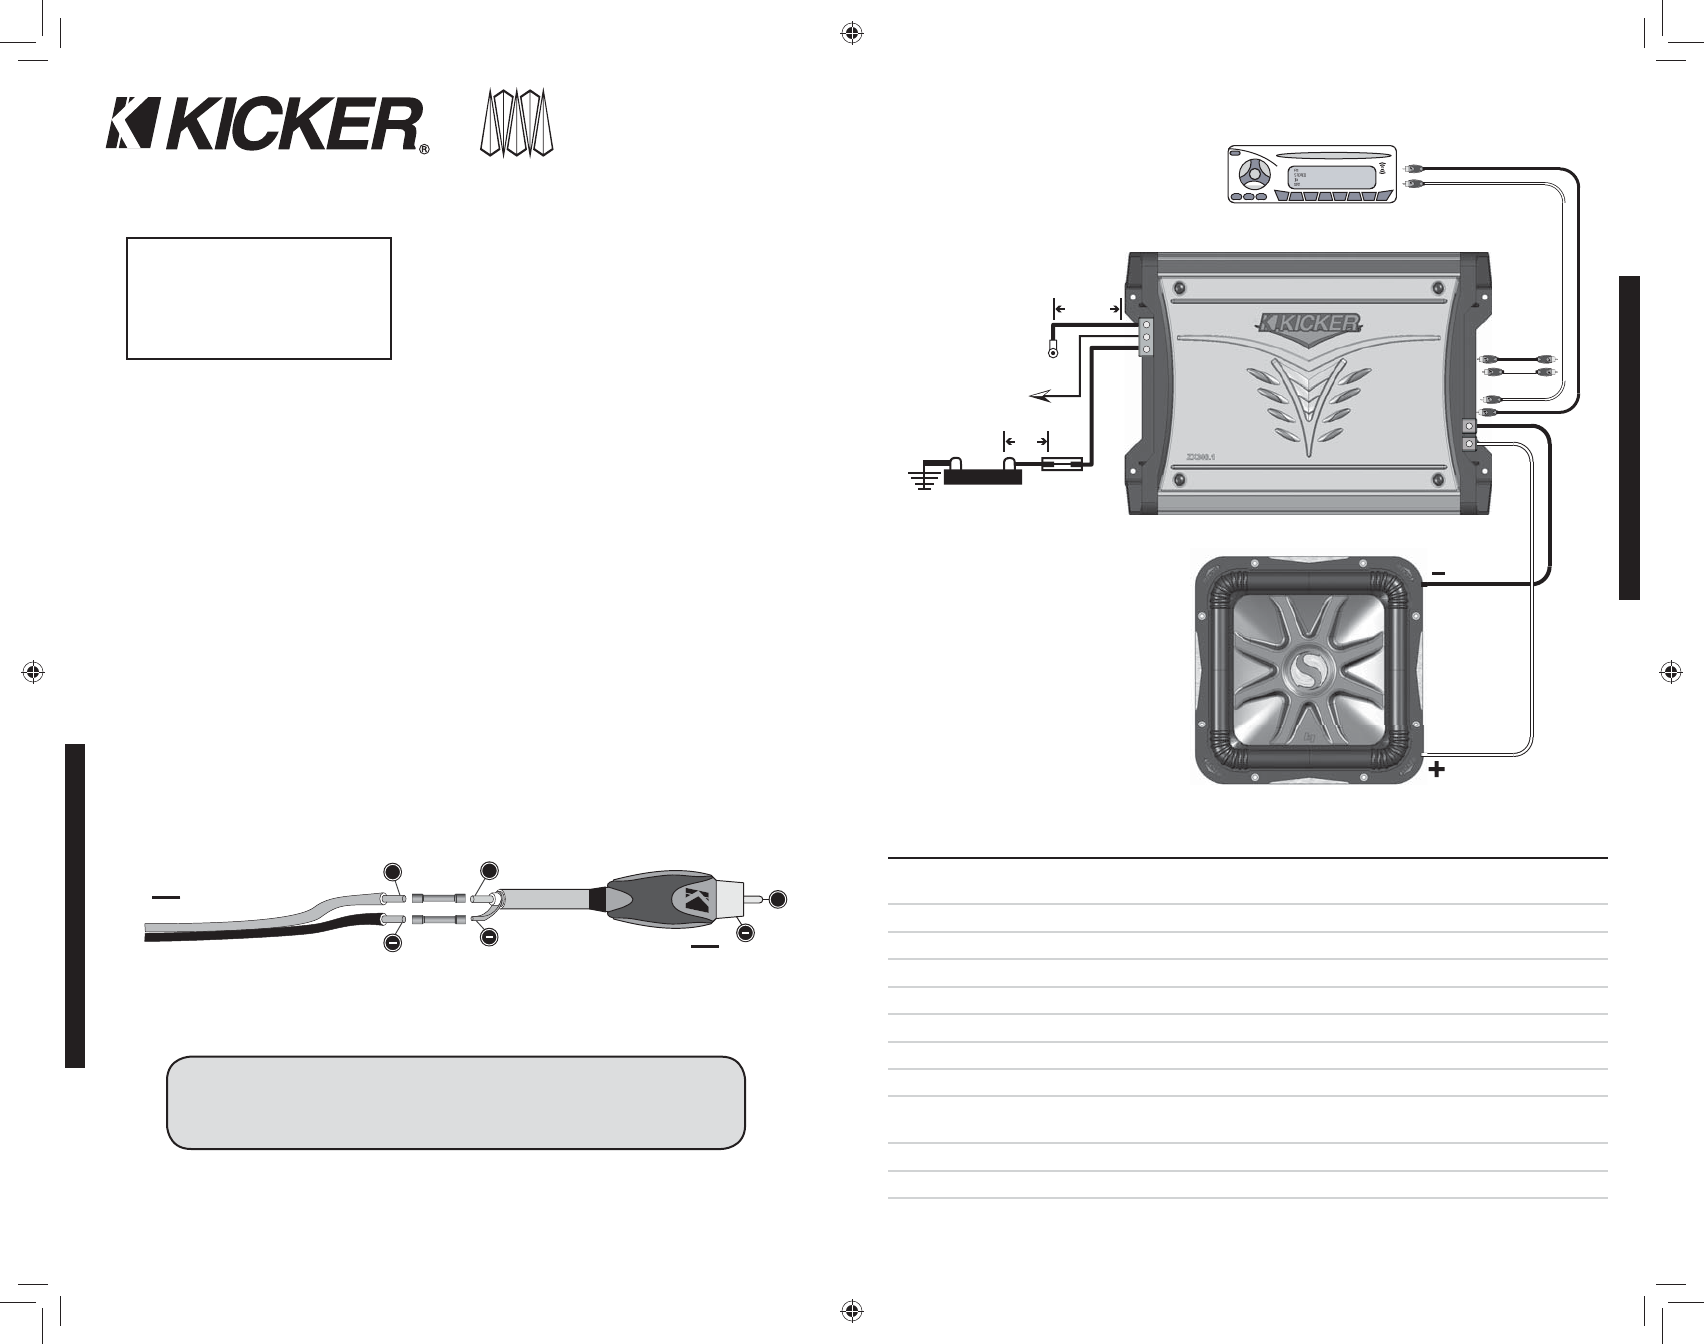 kicker l sub wiring diagram wiring diagram kicker l5 12 wiring diagram solidfonts